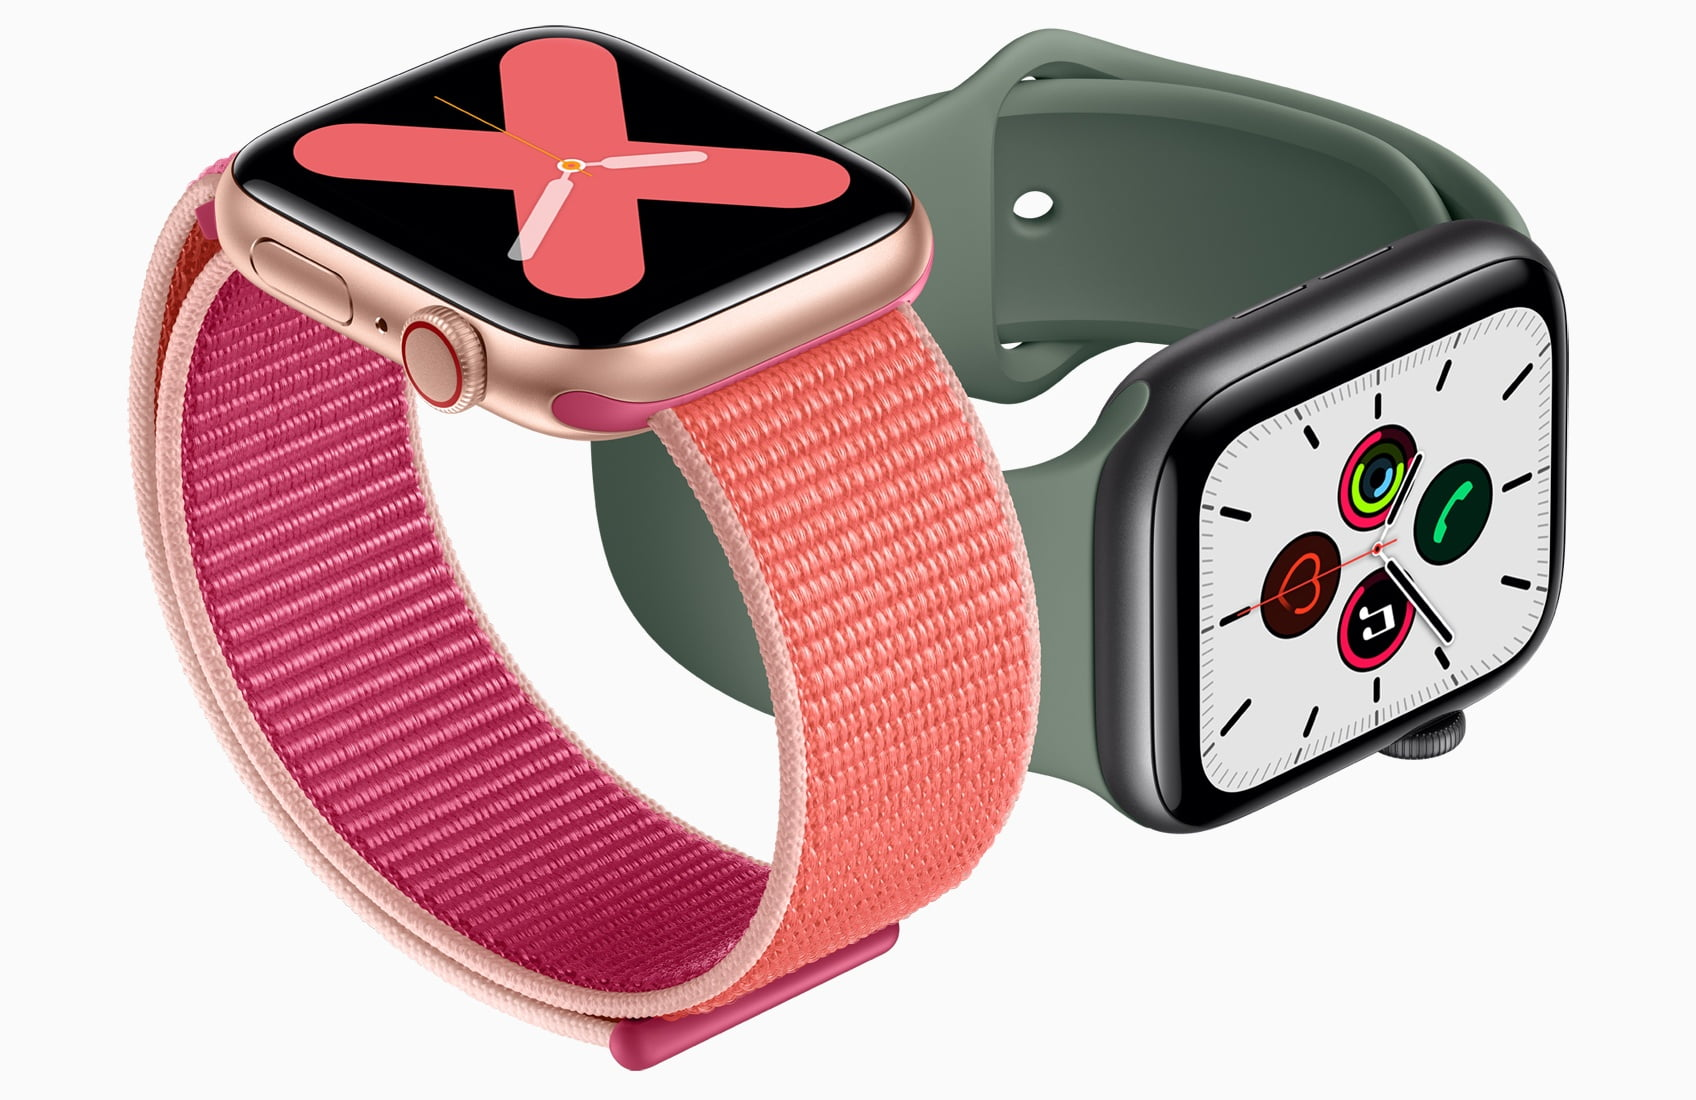 Apple plans to use the Apple Watch's LTPO display technology on the iPhone as well